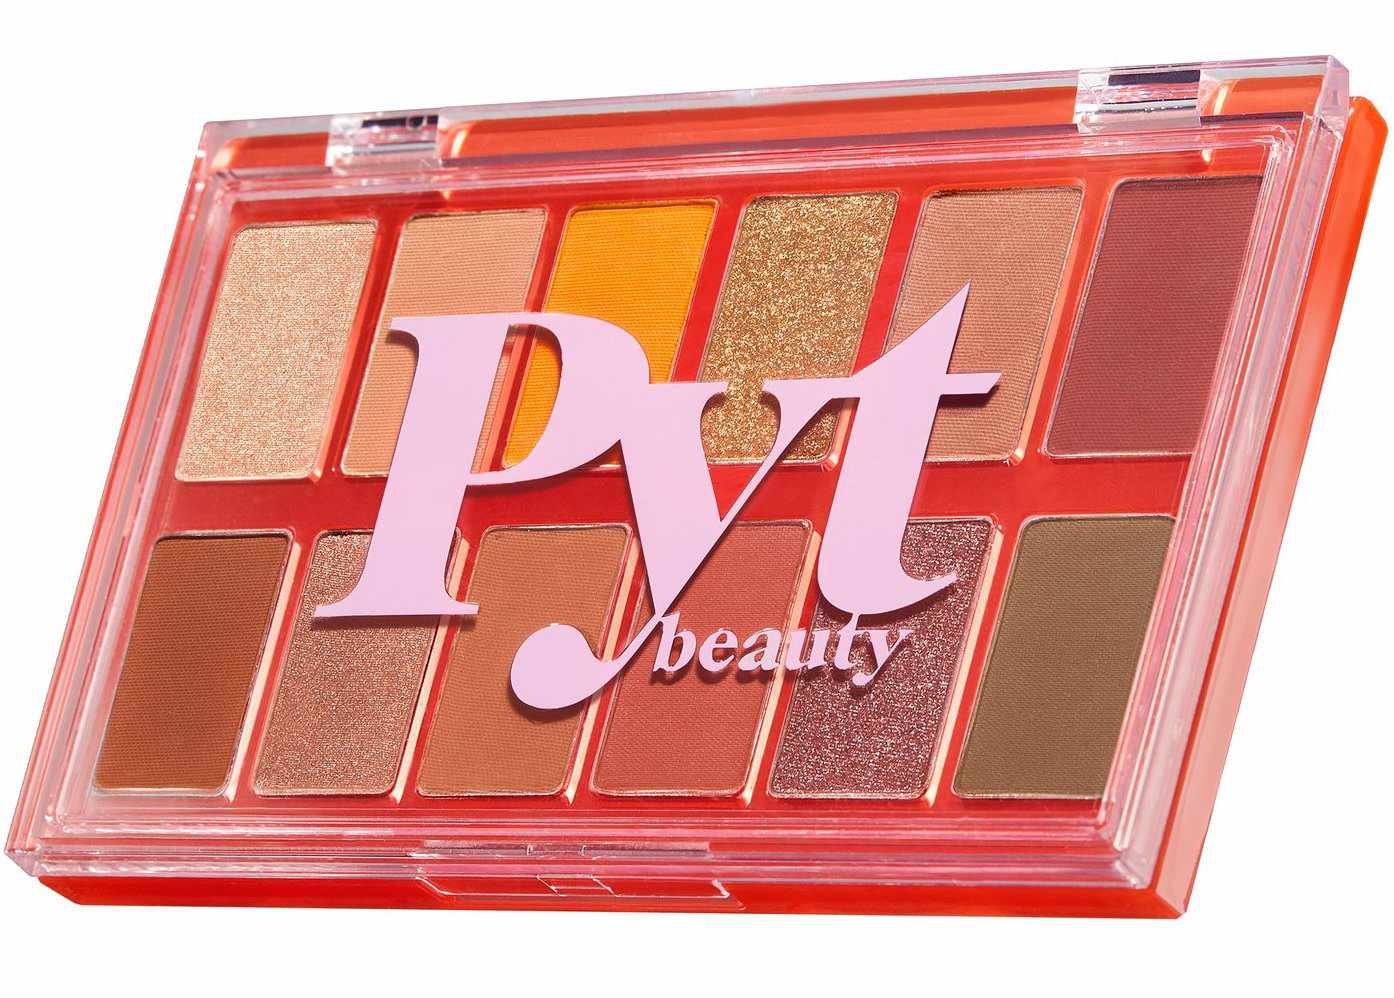 PYT Beauty the Upcycle Eyeshadow Palette in Warm Lit Nude